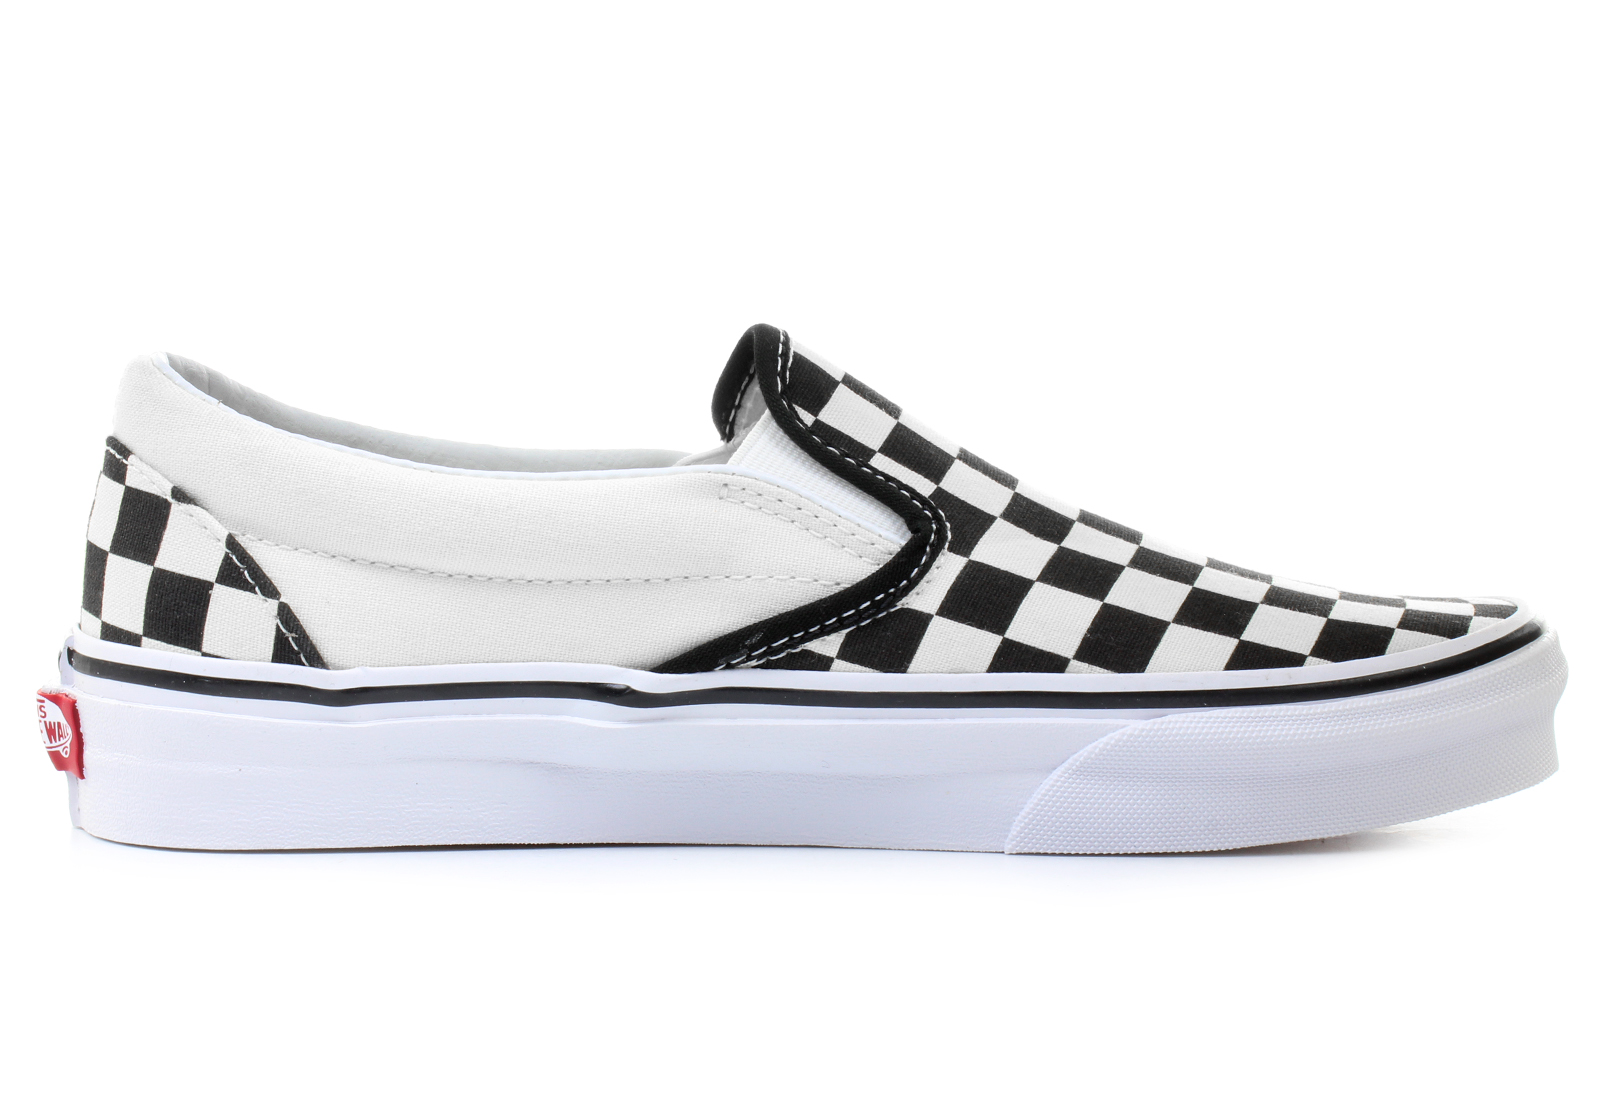 vans slip on classic slip on veyebww online shop for sneakers shoes and boots. Black Bedroom Furniture Sets. Home Design Ideas